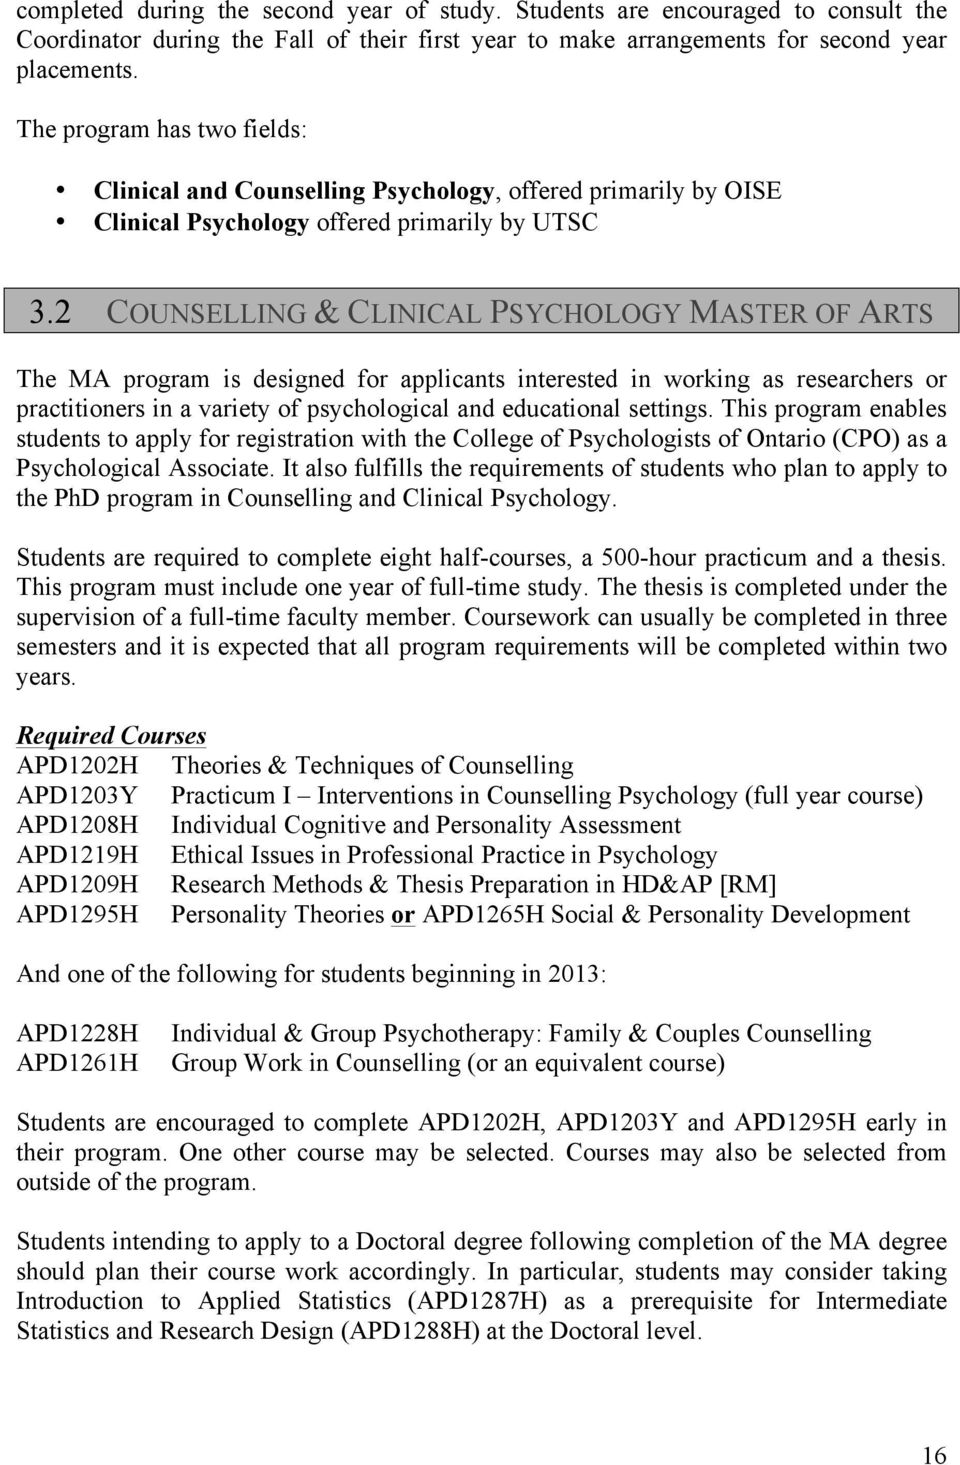 2 COUNSELLING & CLINICAL PSYCHOLOGY MASTER OF ARTS The MA program is designed for applicants interested in working as researchers or practitioners in a variety of psychological and educational